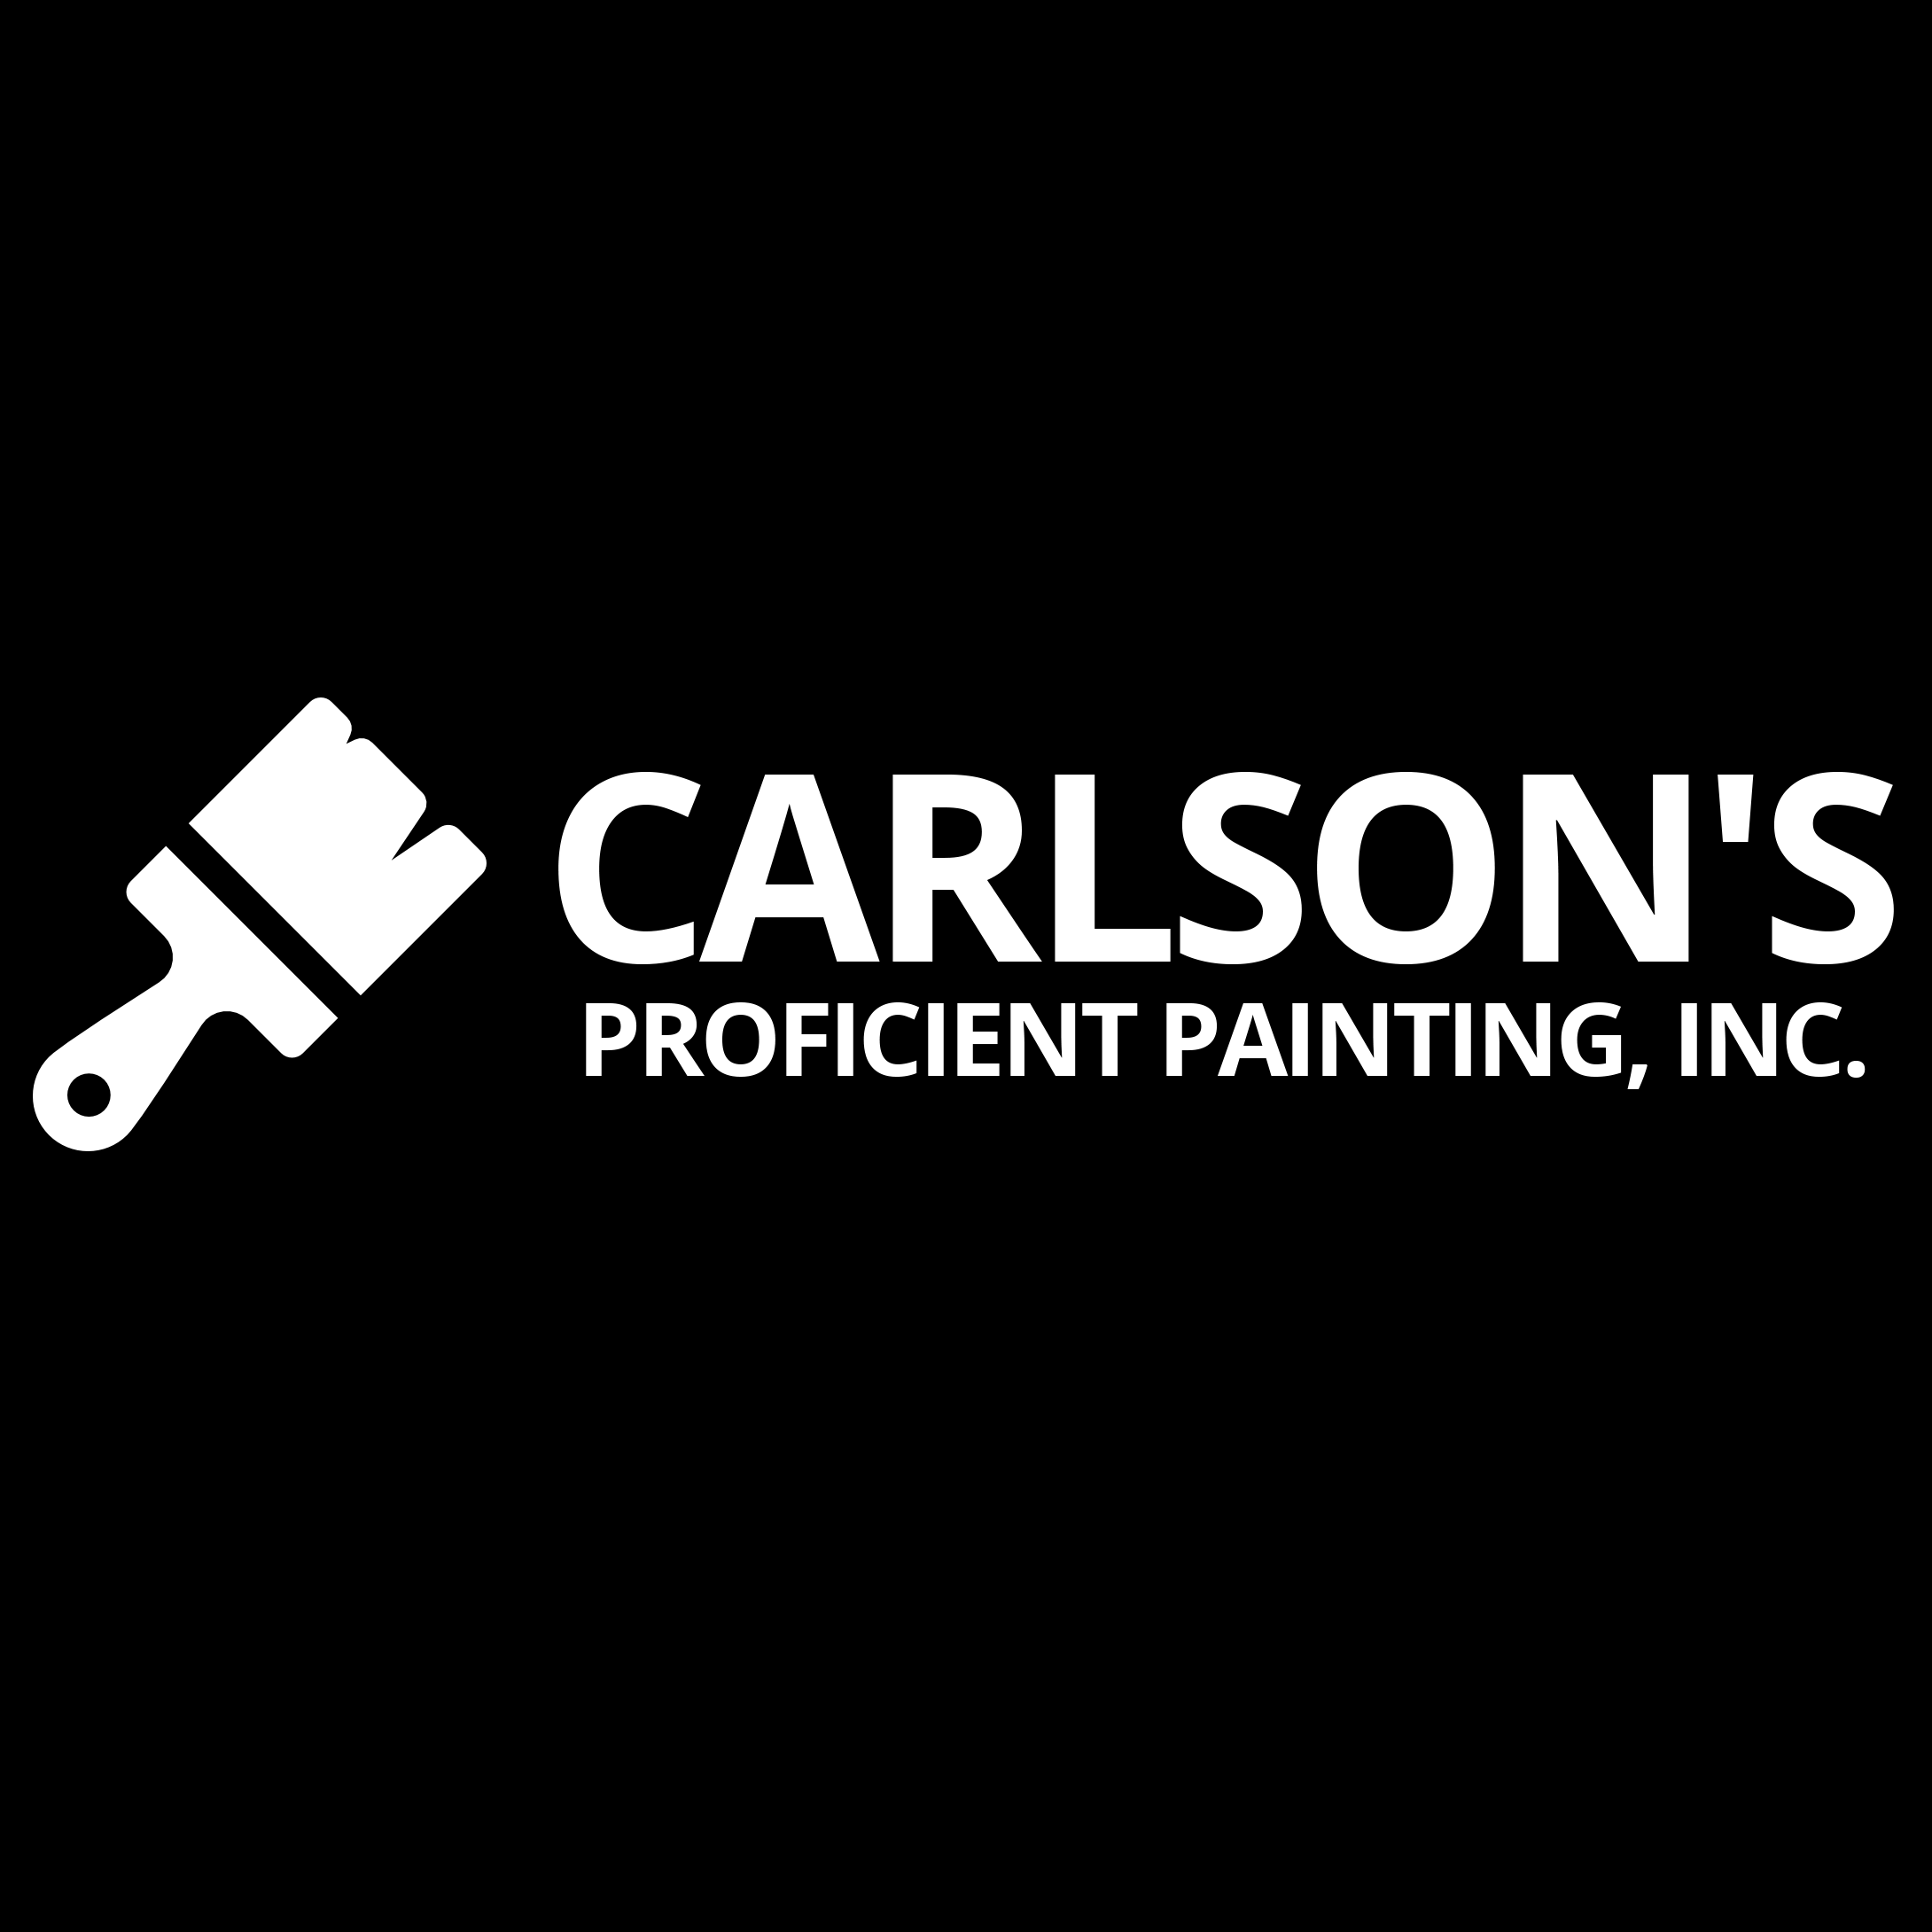 Carlson's Proficient Painting, Inc.